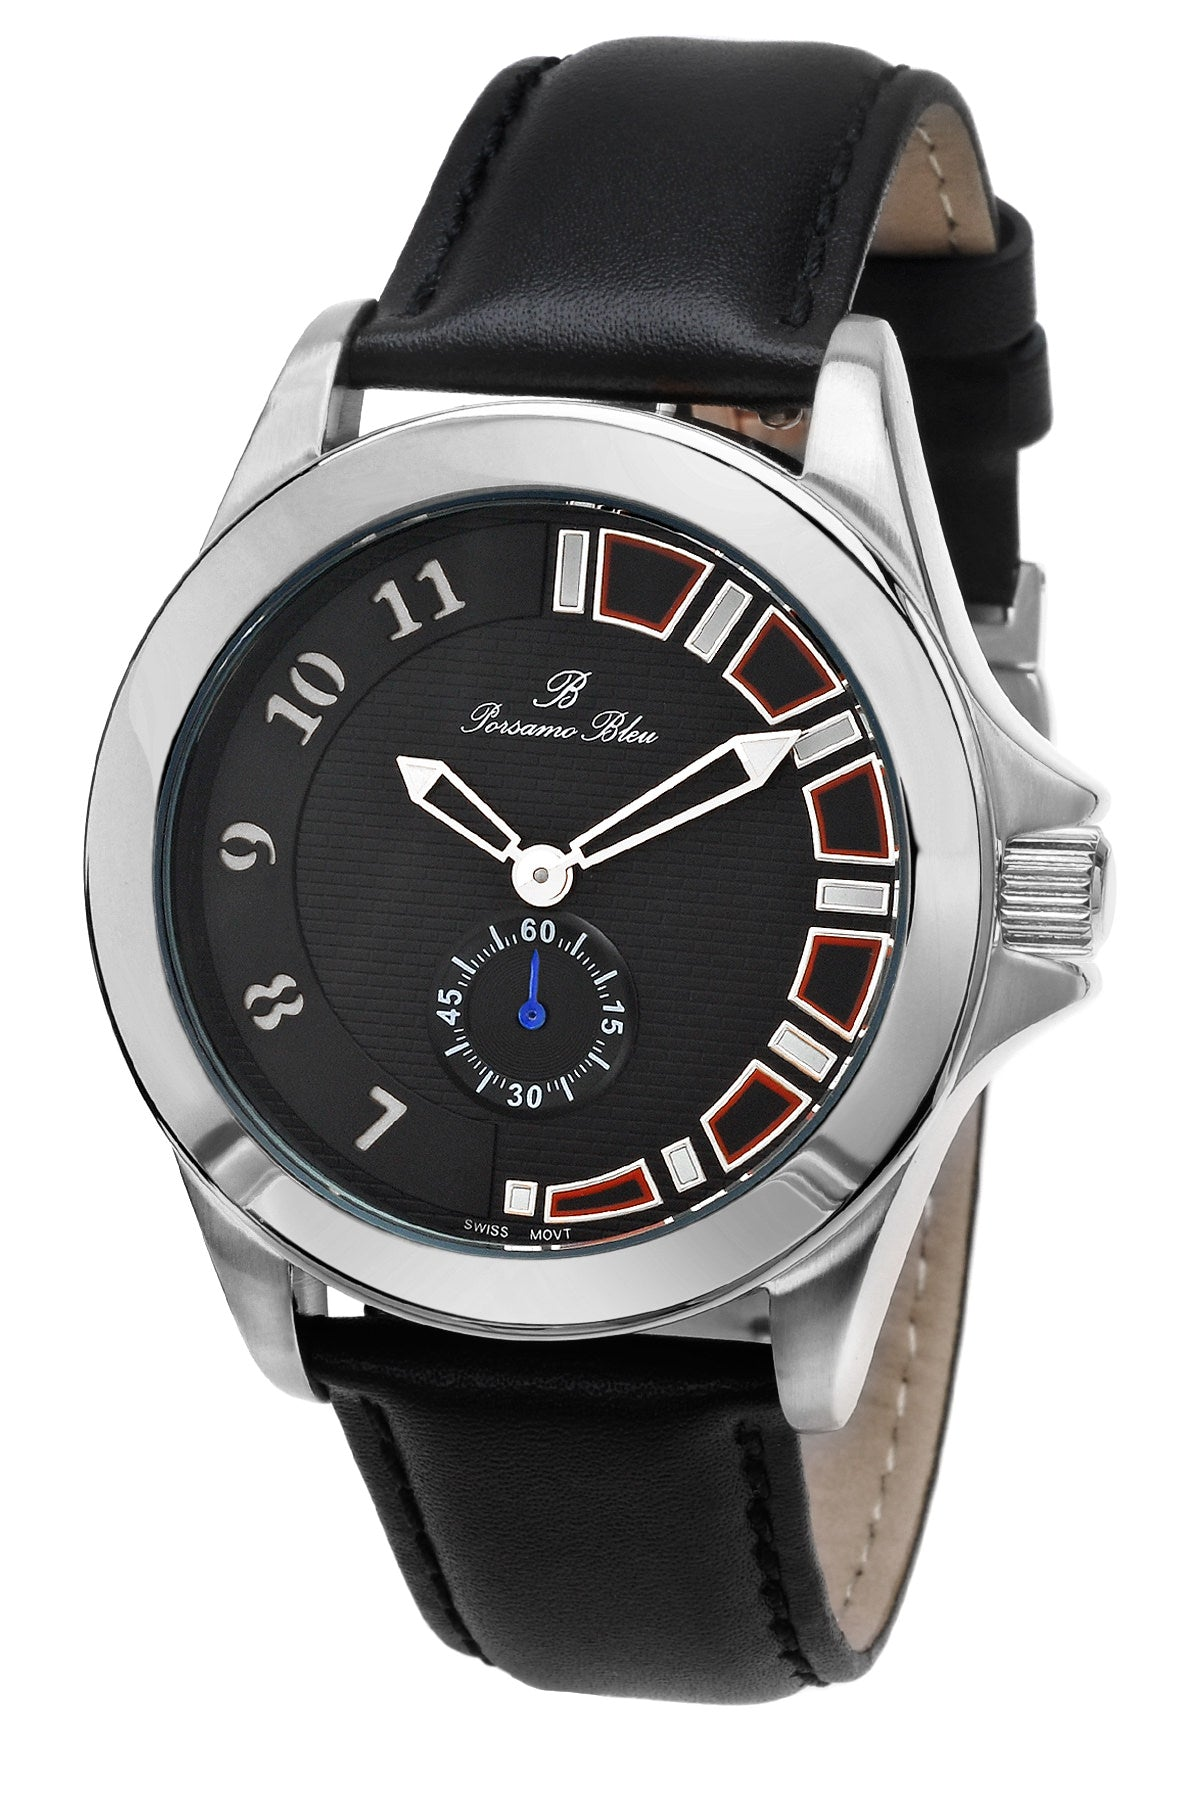 Porsamo Bleu Soho luxury men's dress watch with genuine leather band, silver tone and black 041ASOL